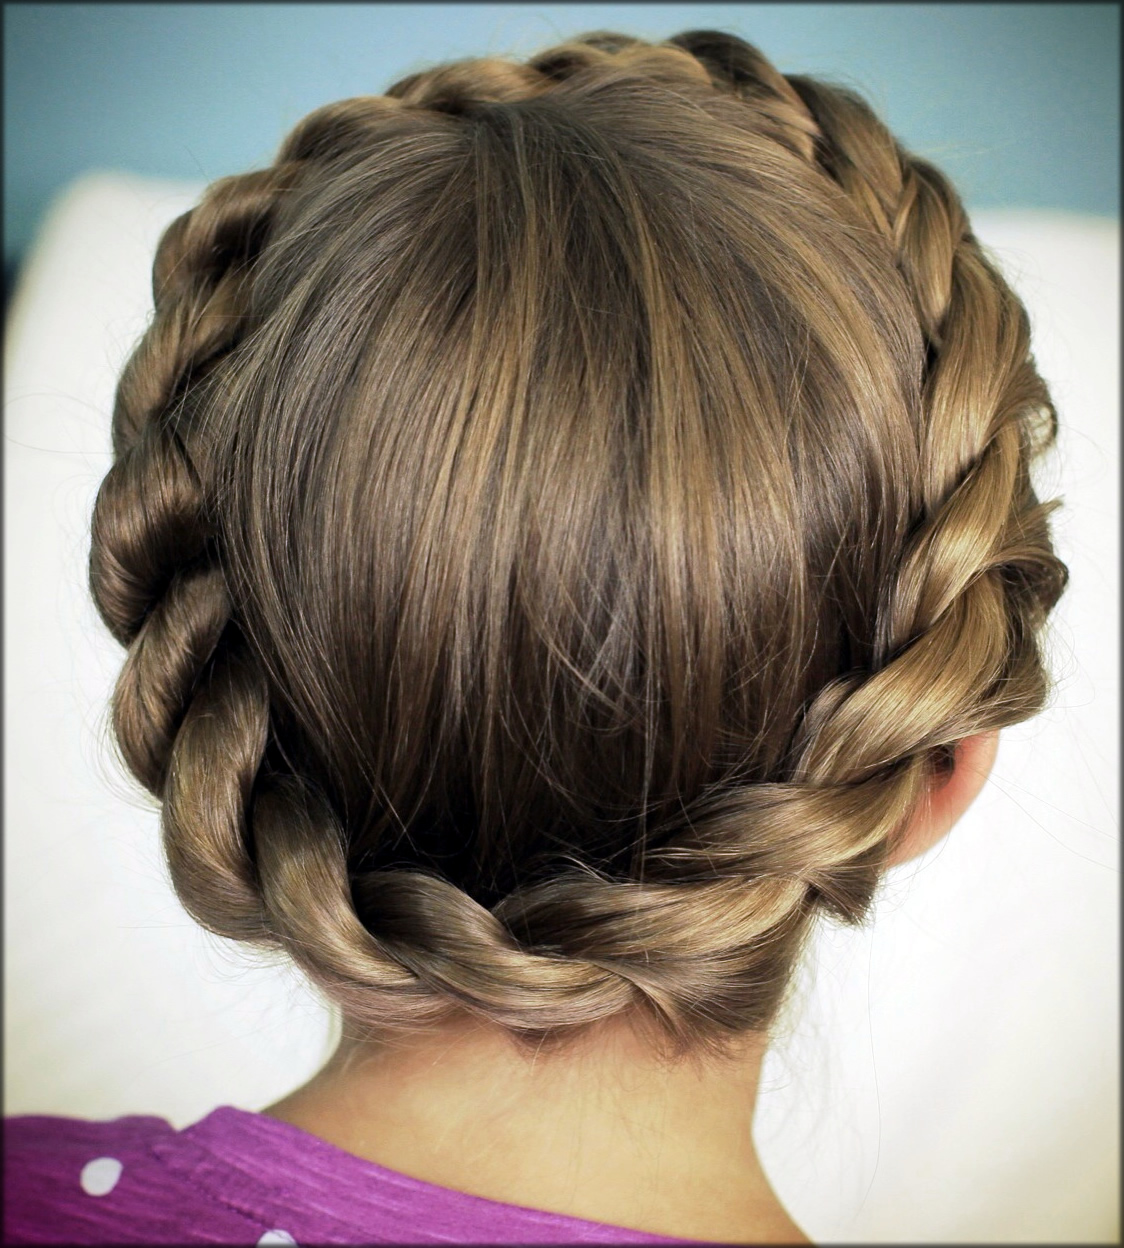 Rope Twisted Braid for the eid